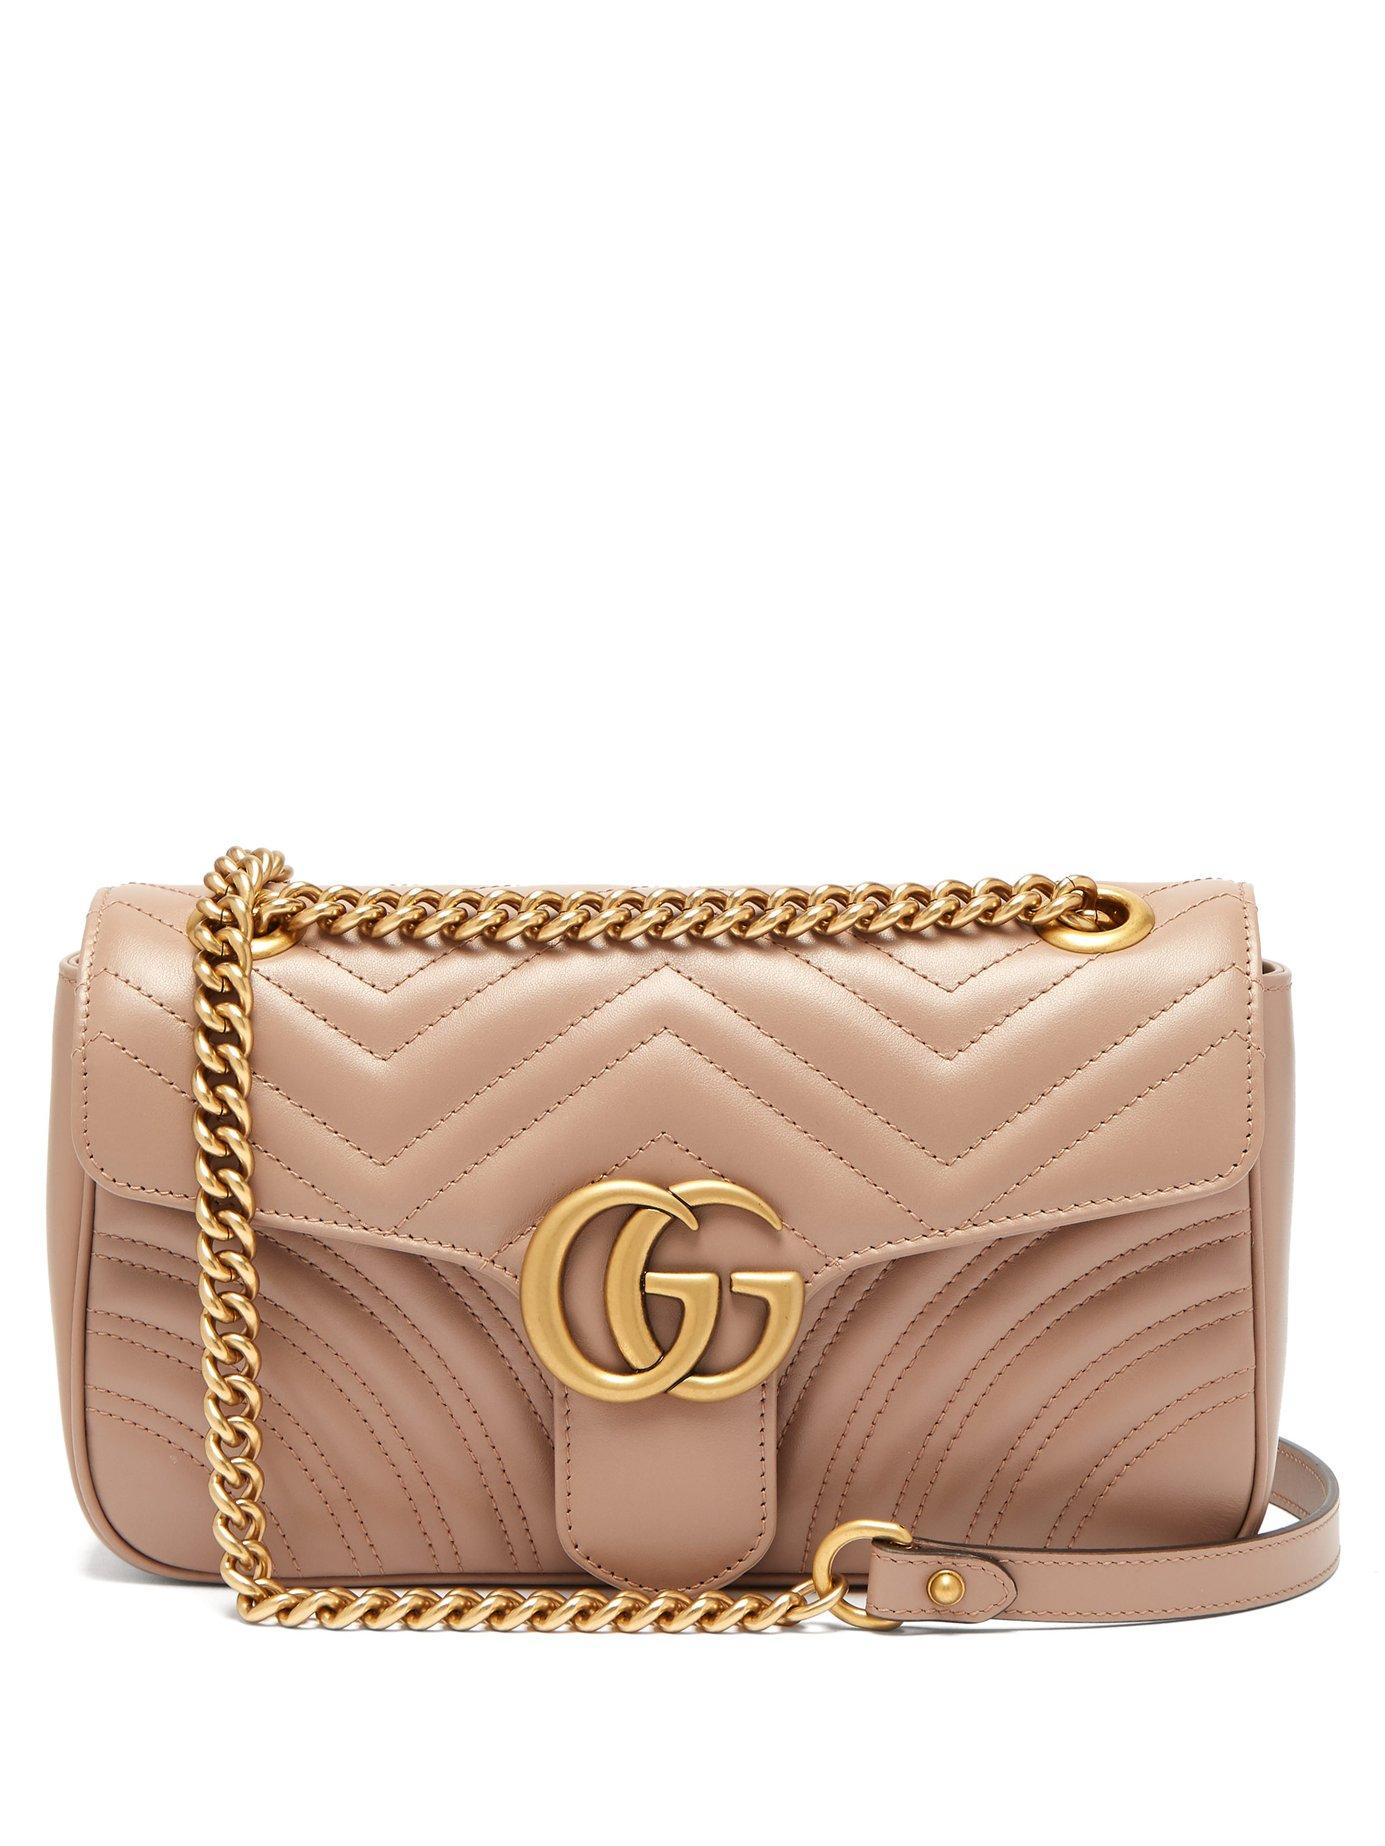 1817fd0b116 Gucci. Women s Gg Marmont Small Quilted Leather Shoulder Bag